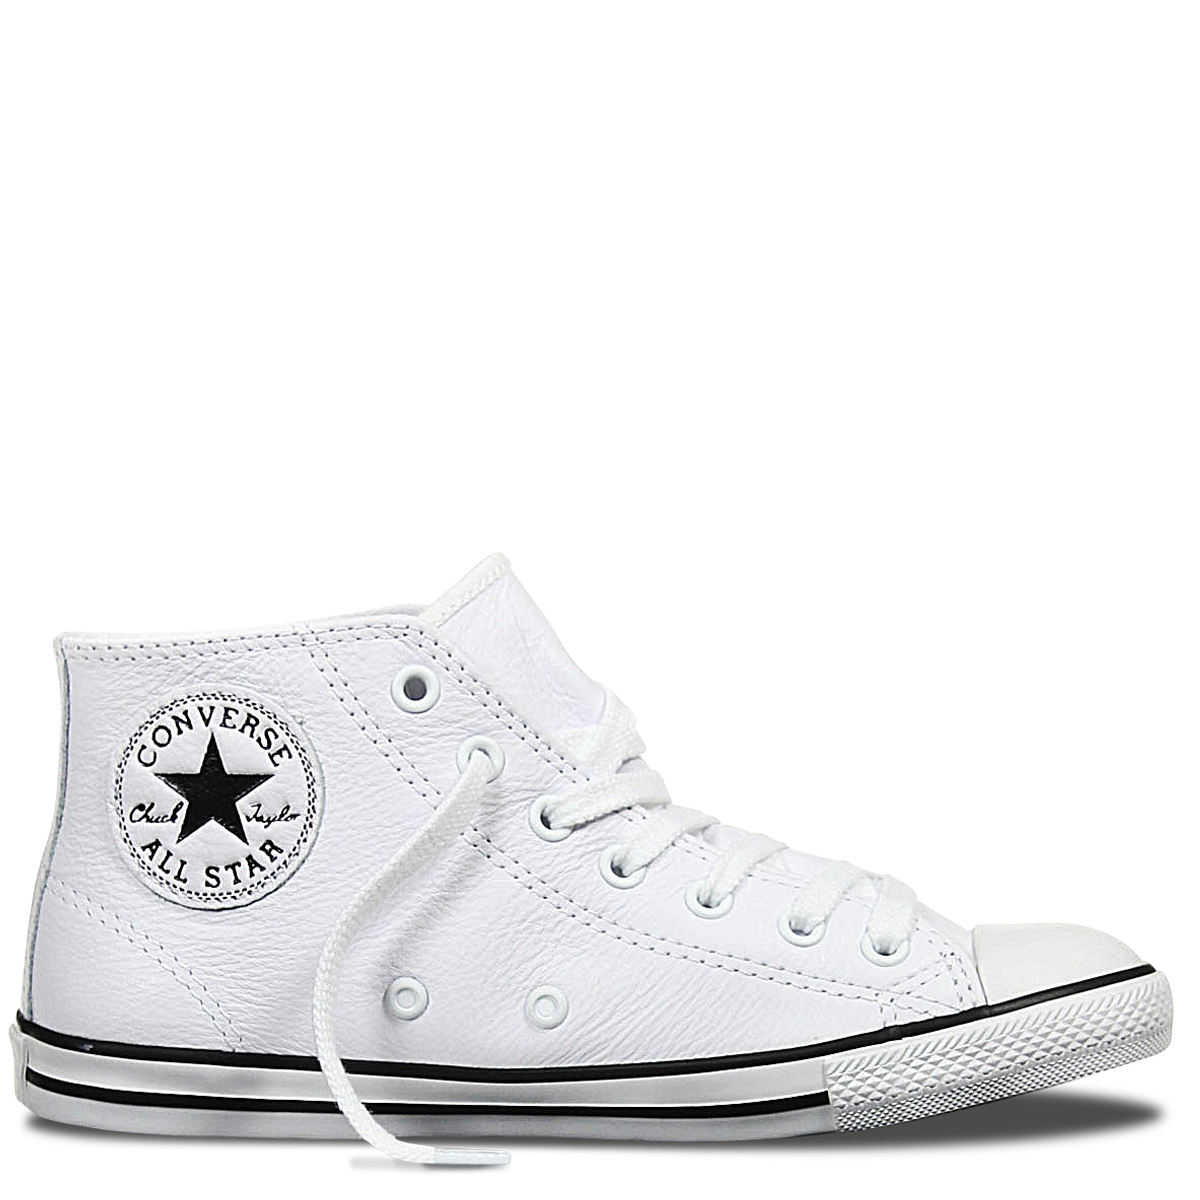 Chuck Taylor All Star Dainty Leather Mid White